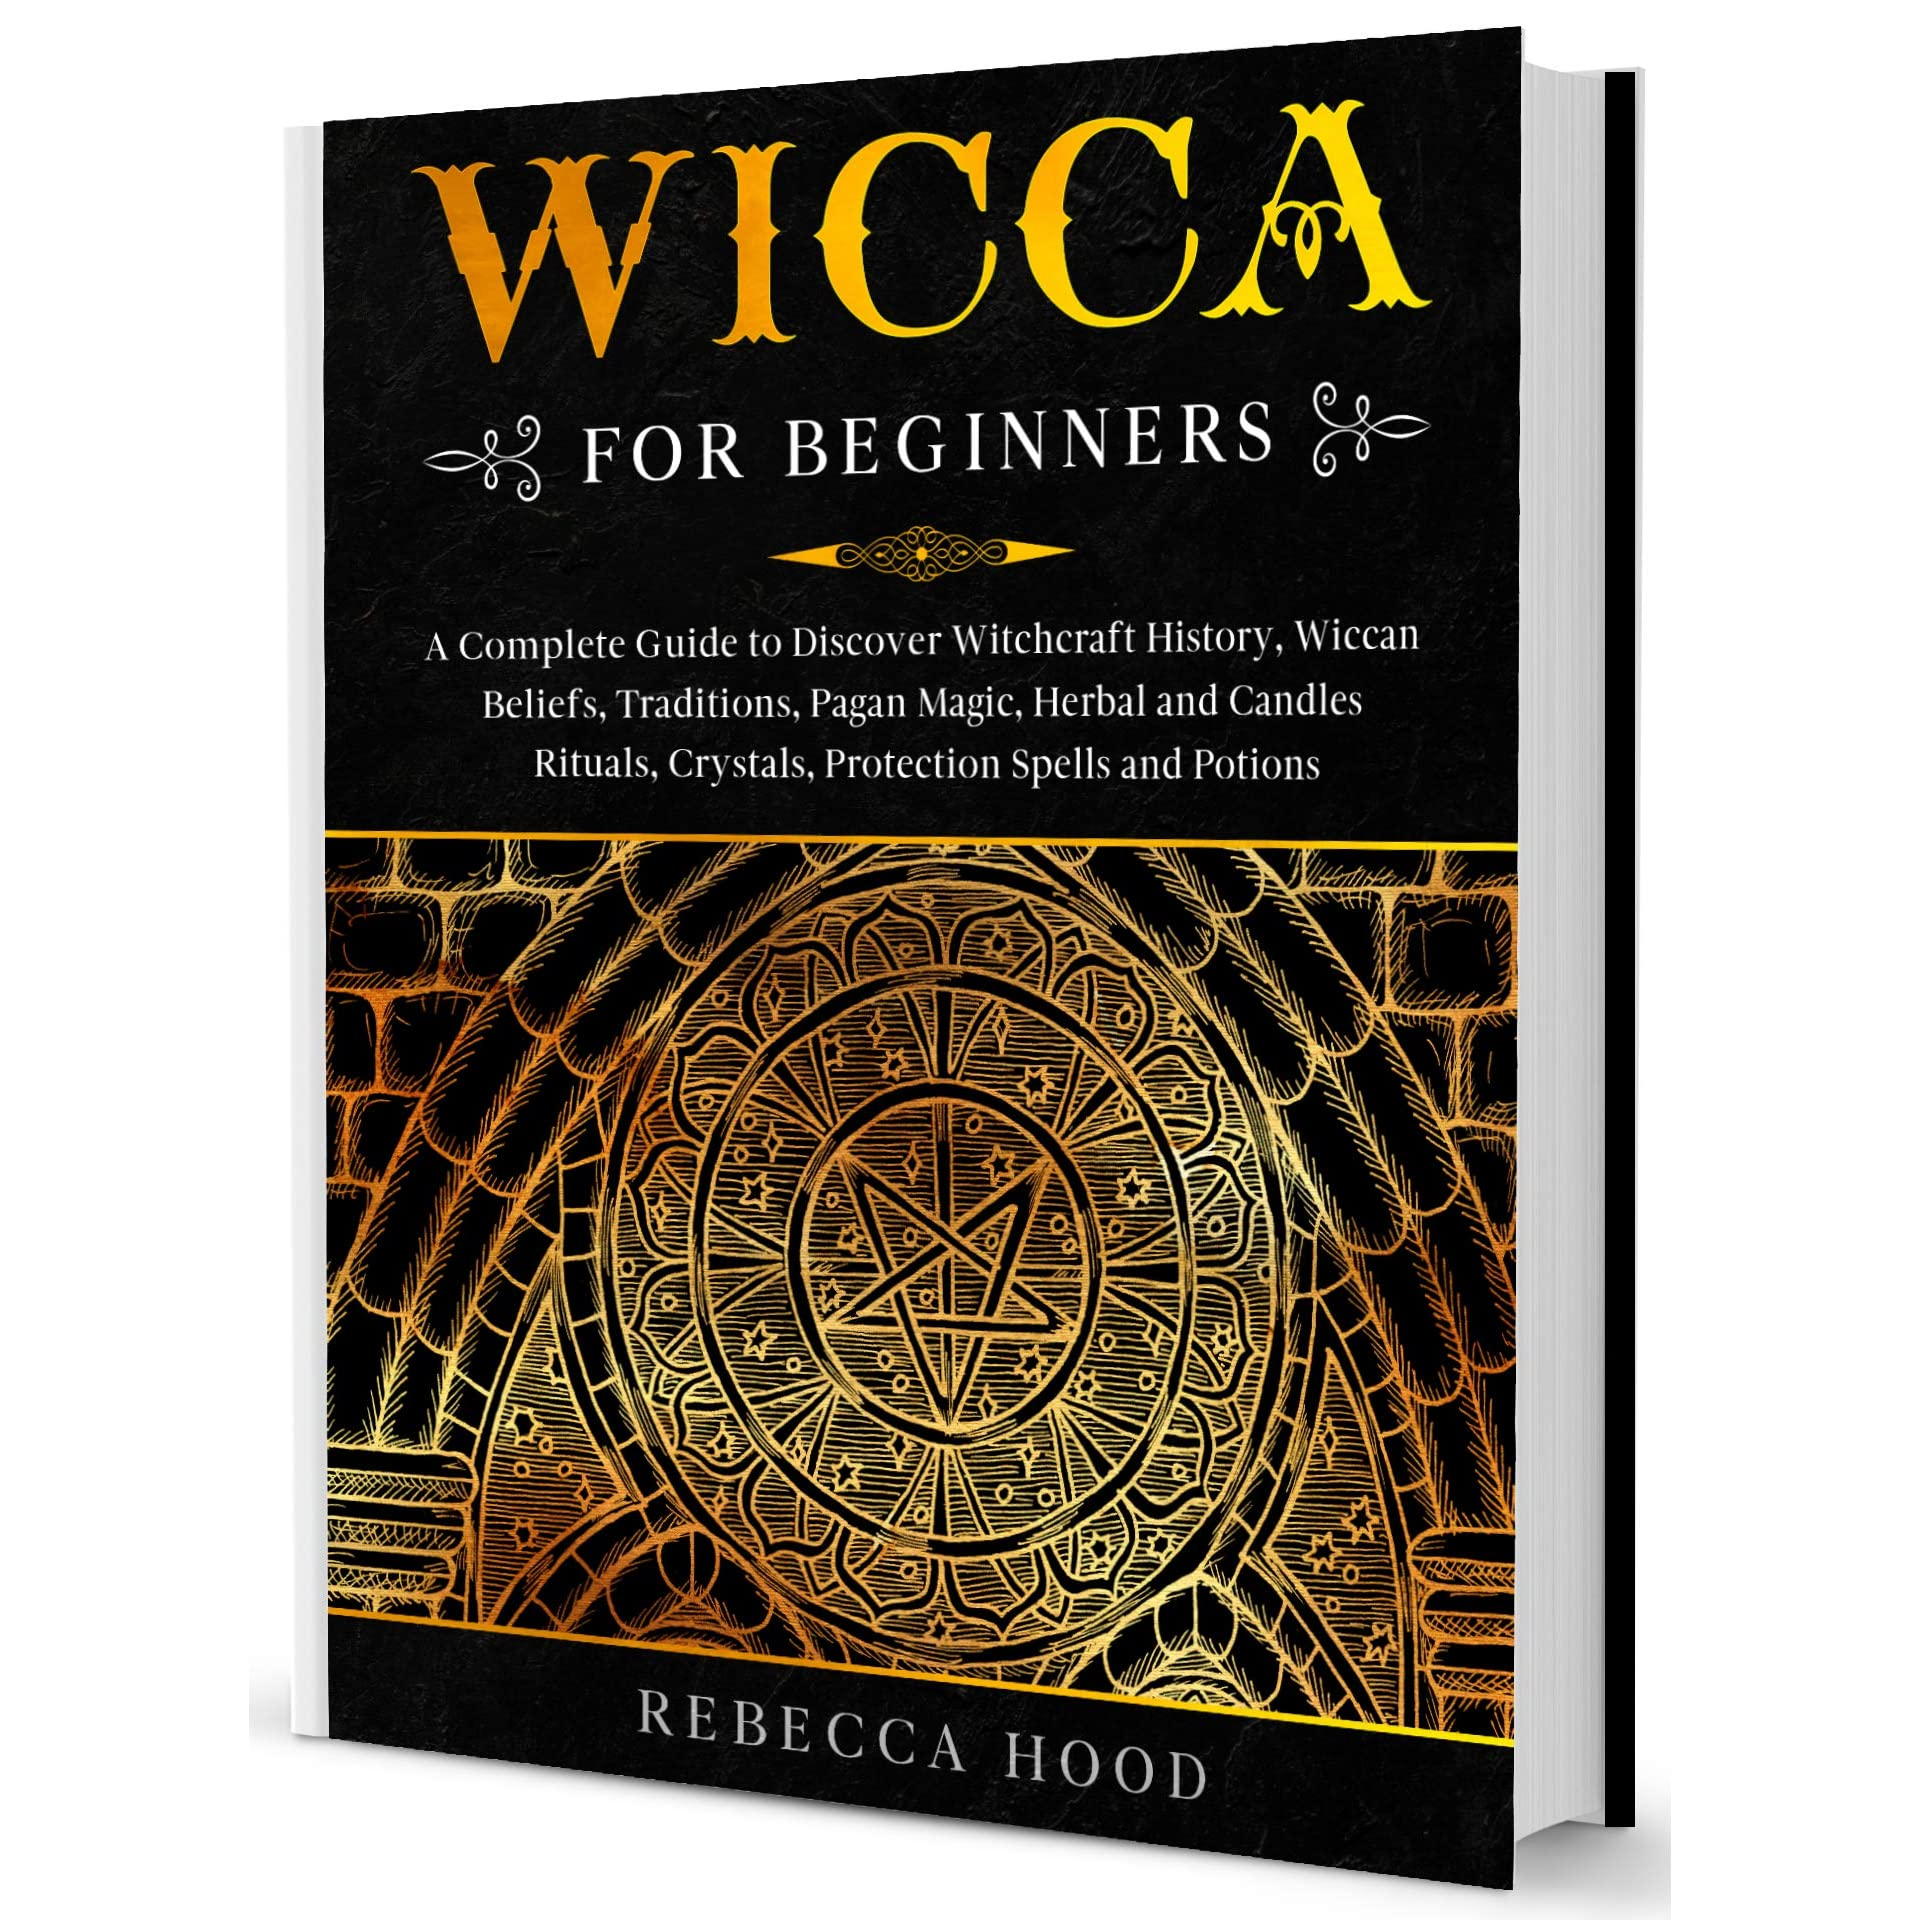 Wicca For Beginners A Complete Guide To Discover Witchcraft History Wiccan Beliefs Traditions Pagan Magic Herbal And Candles Rituals Crystals Protection Spells And Potions By Rebecca Hood